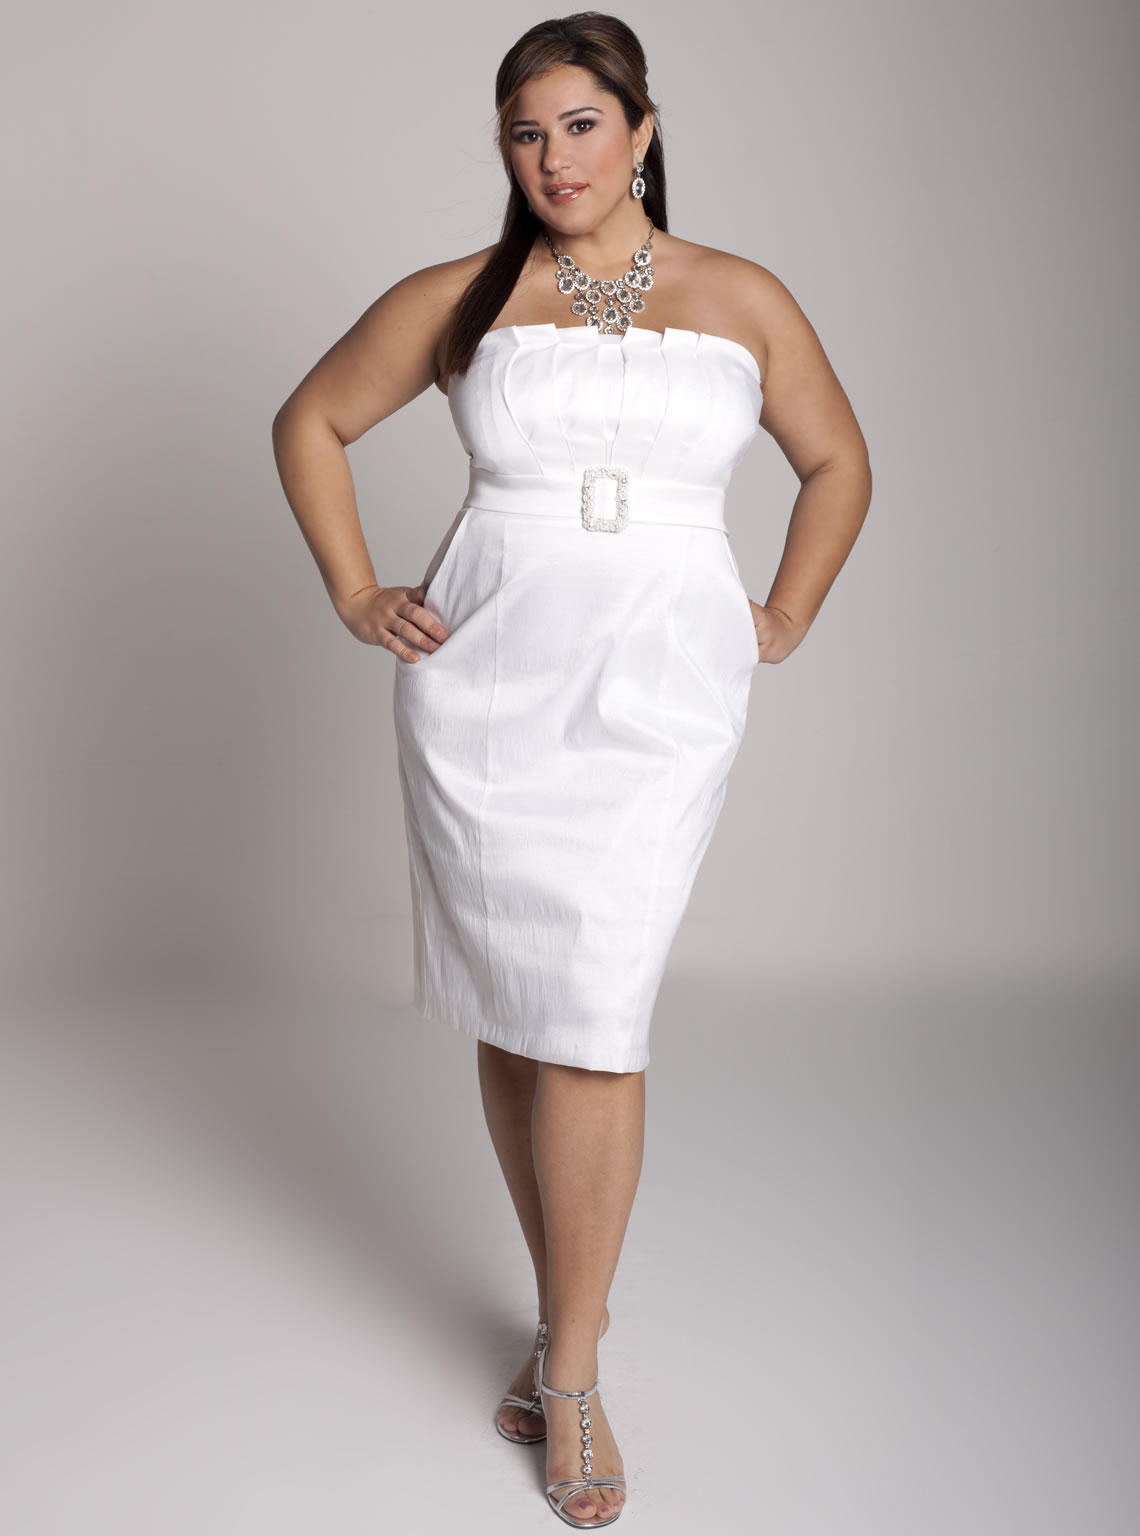 Delight Plus Size Wedding Gowns 2012. Delight Plus Size Wedding Gowns 2012